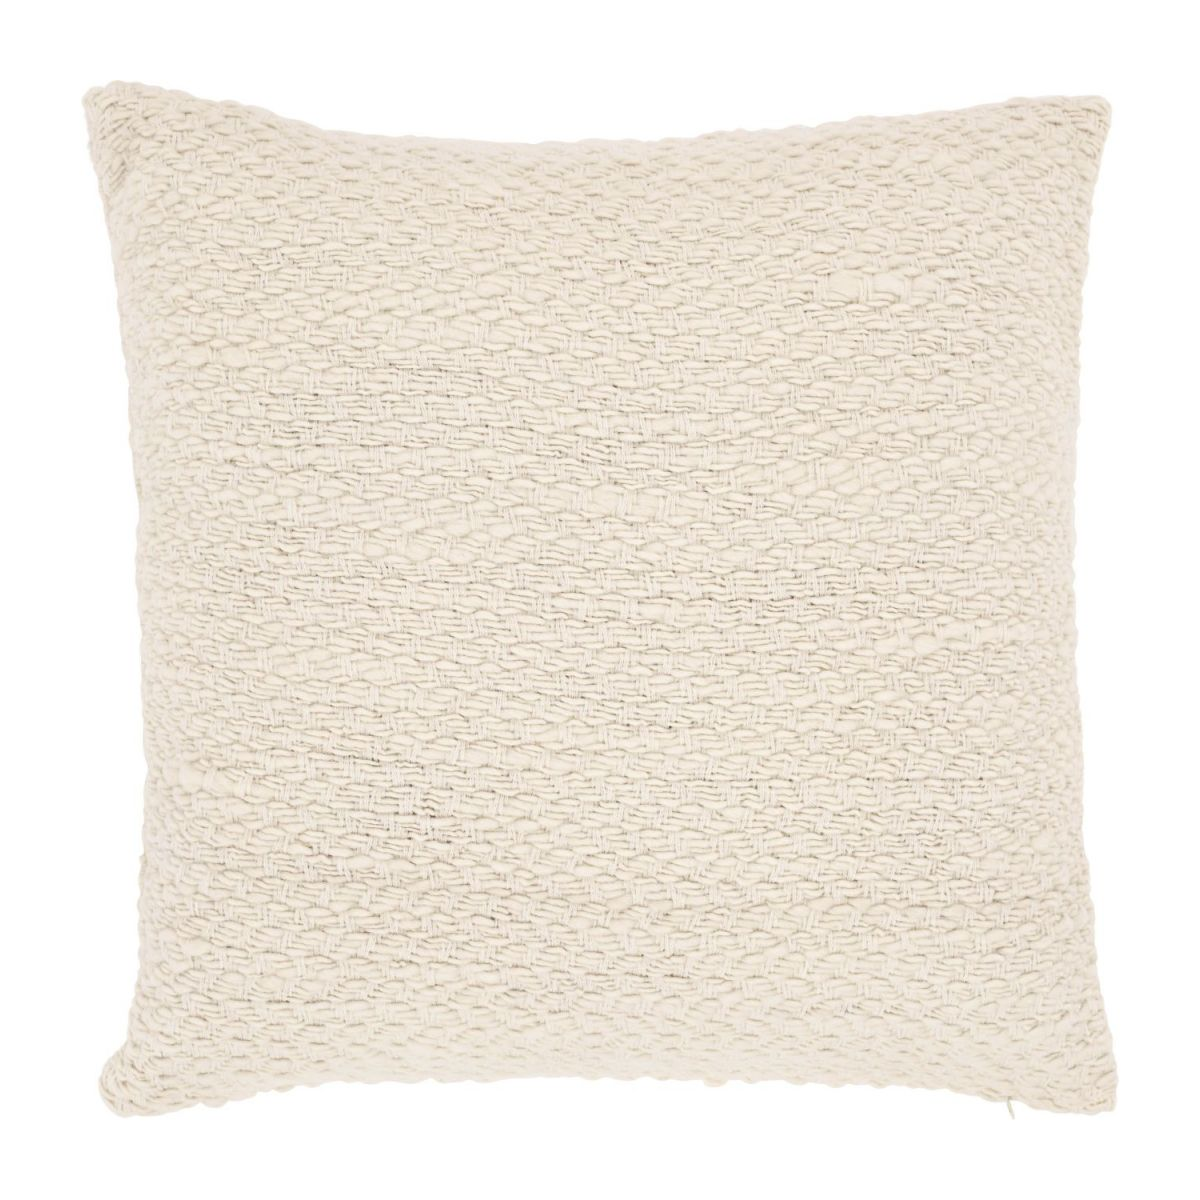 Coussin  tricot naturel 50 x 50 n°2